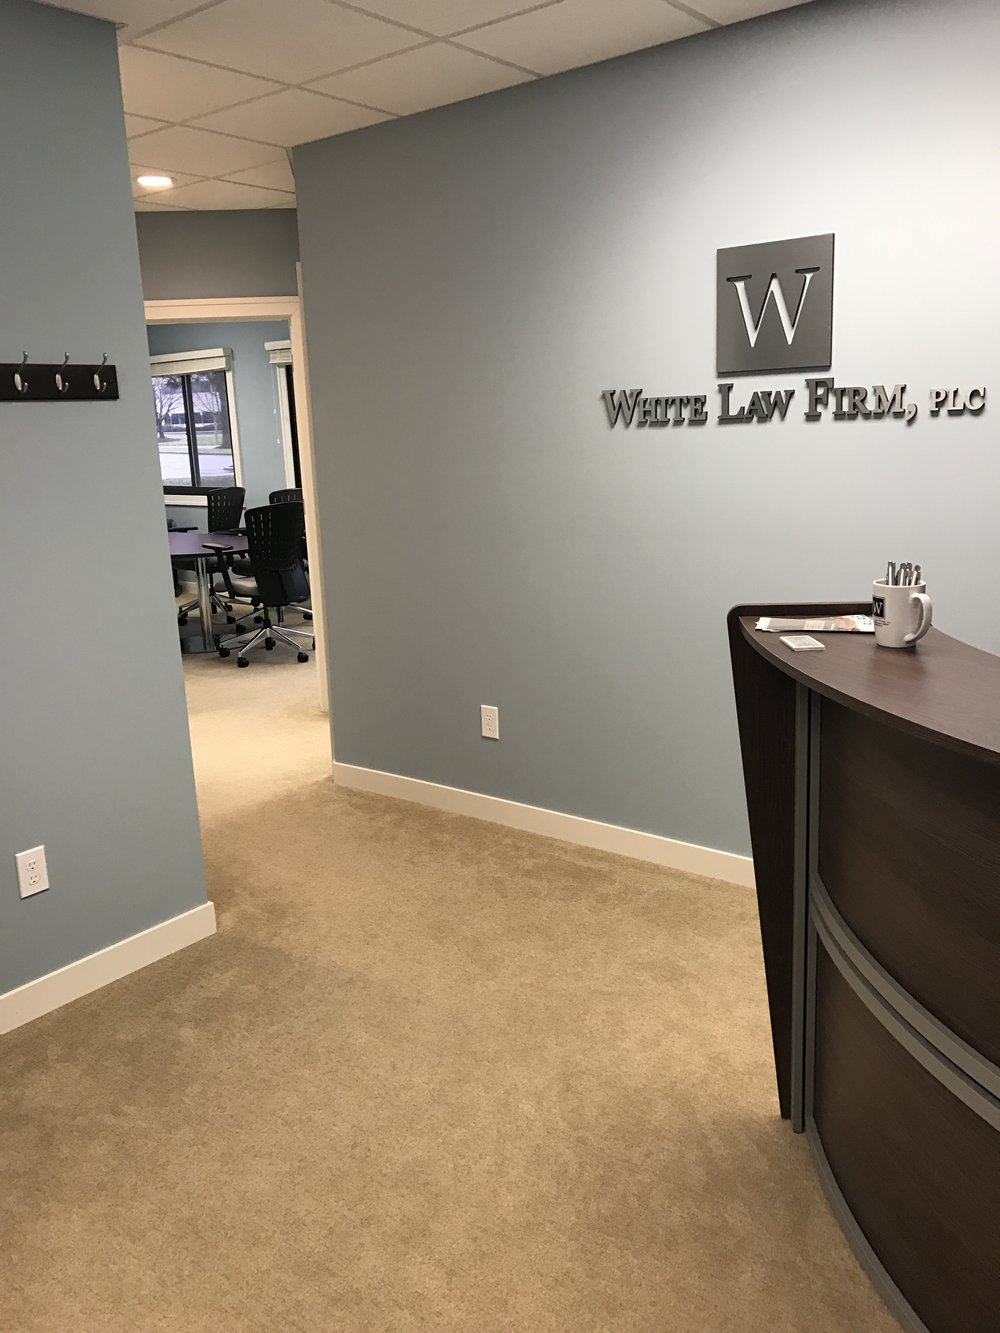 White Law Firm, PLC